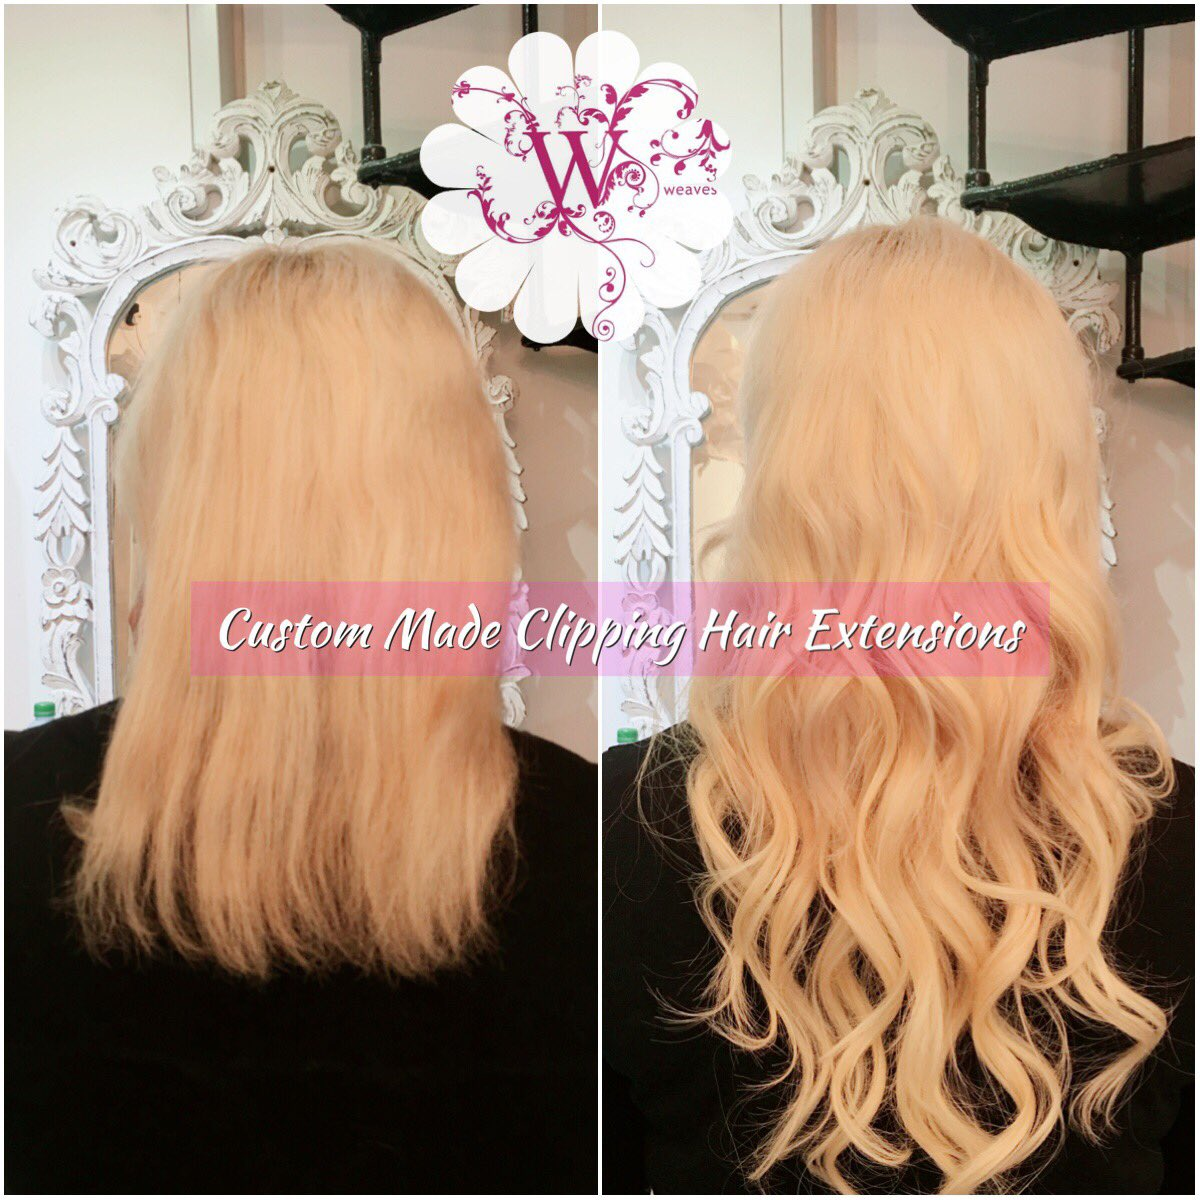 Weaves On Twitter Custom Made Clipping Hair Extensions Perfect